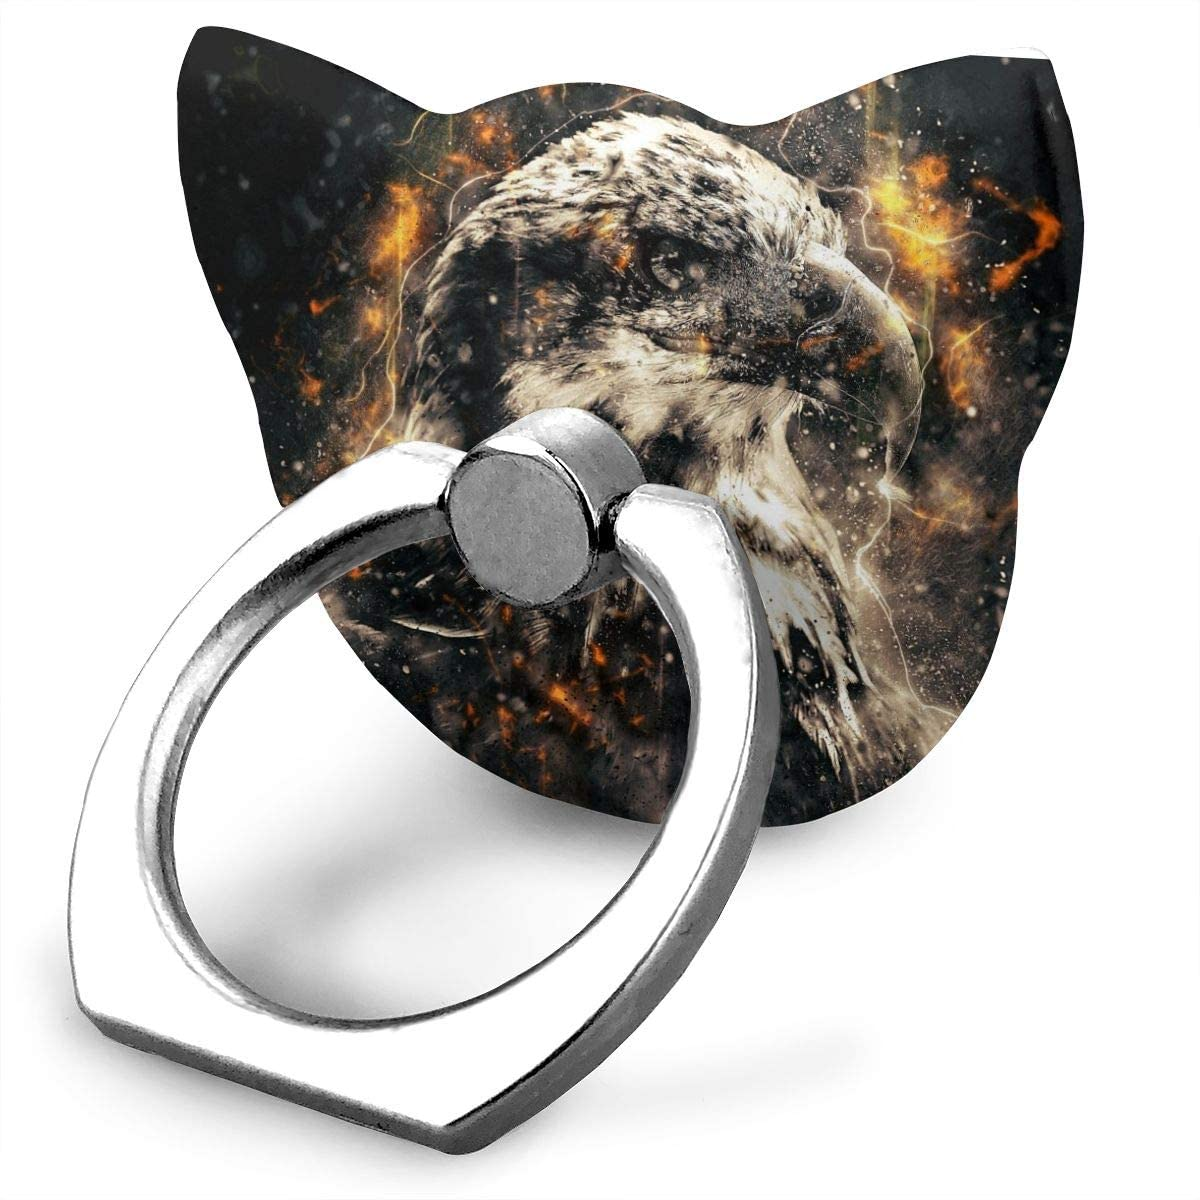 Cat Cell Phone Ring Holder, Ring Phone Holder Bald Eagle with Fire Cat Ring Holder for Cell Phone, Phone Grip Holder, Phone Ring Stand Finger Kickstand 360° Rotation Compatible with All Smartphones